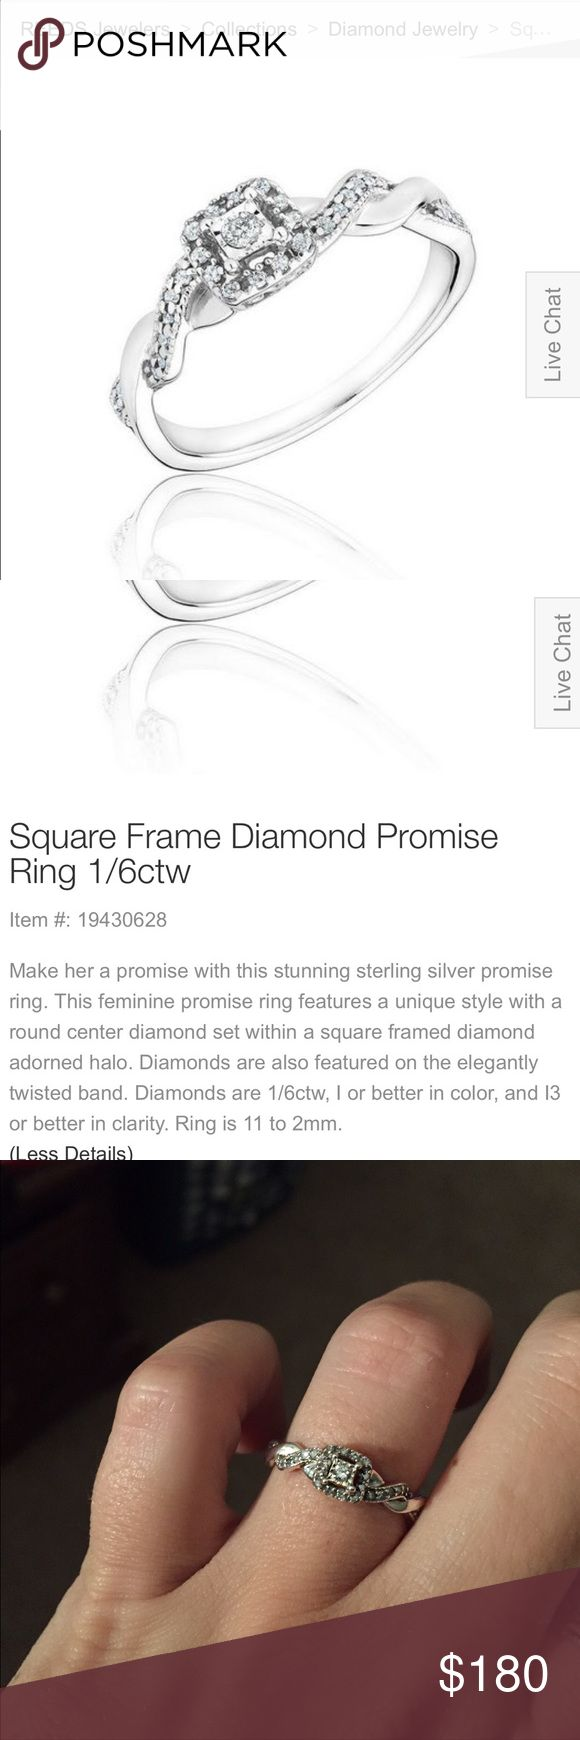 Reeds Diamond Promise Ring Reeds Square Frame Diamond Promise Ring. Beautiful and feminine! Size 5.5/6 Jewelry Rings